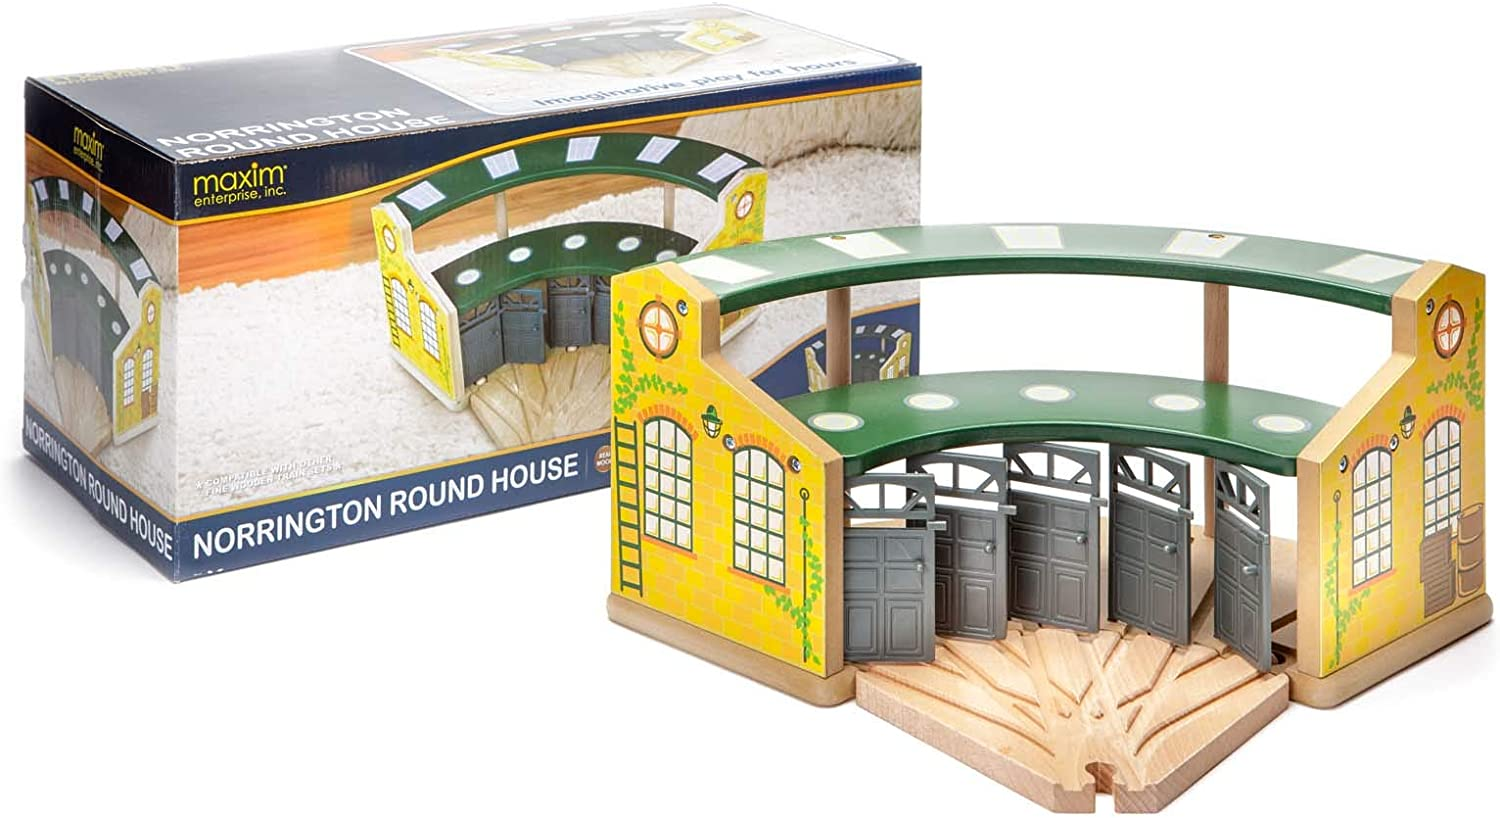 maxim Deluxe enterprise Wooden Train List price Round 5-Way House with Switching